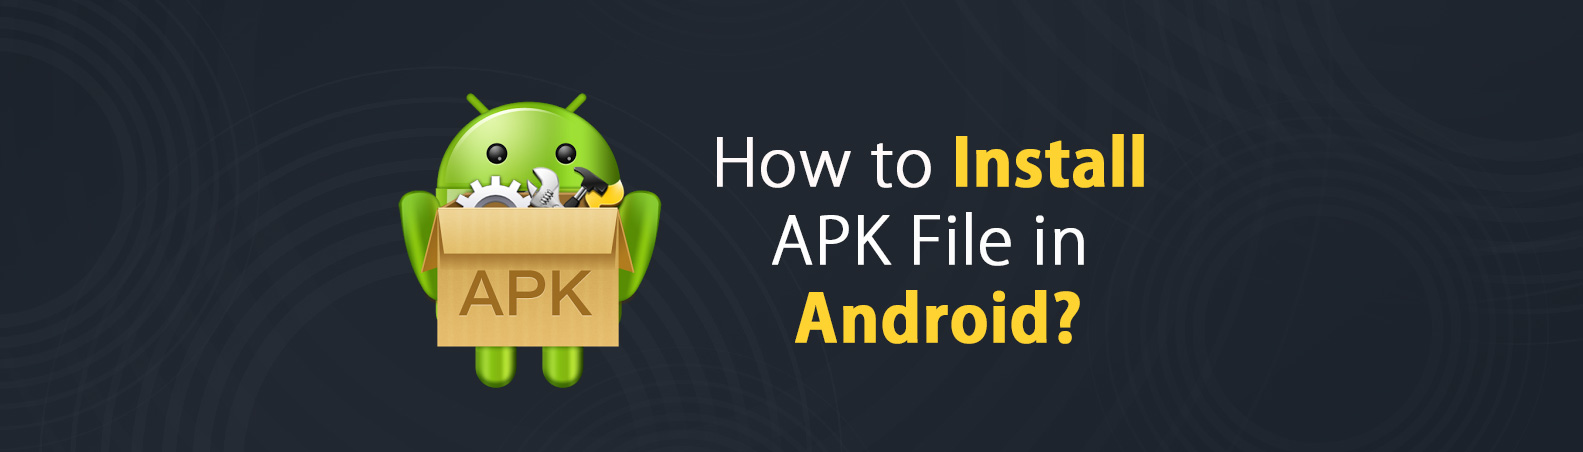 How to Install APK file in Android? – Install APK Android